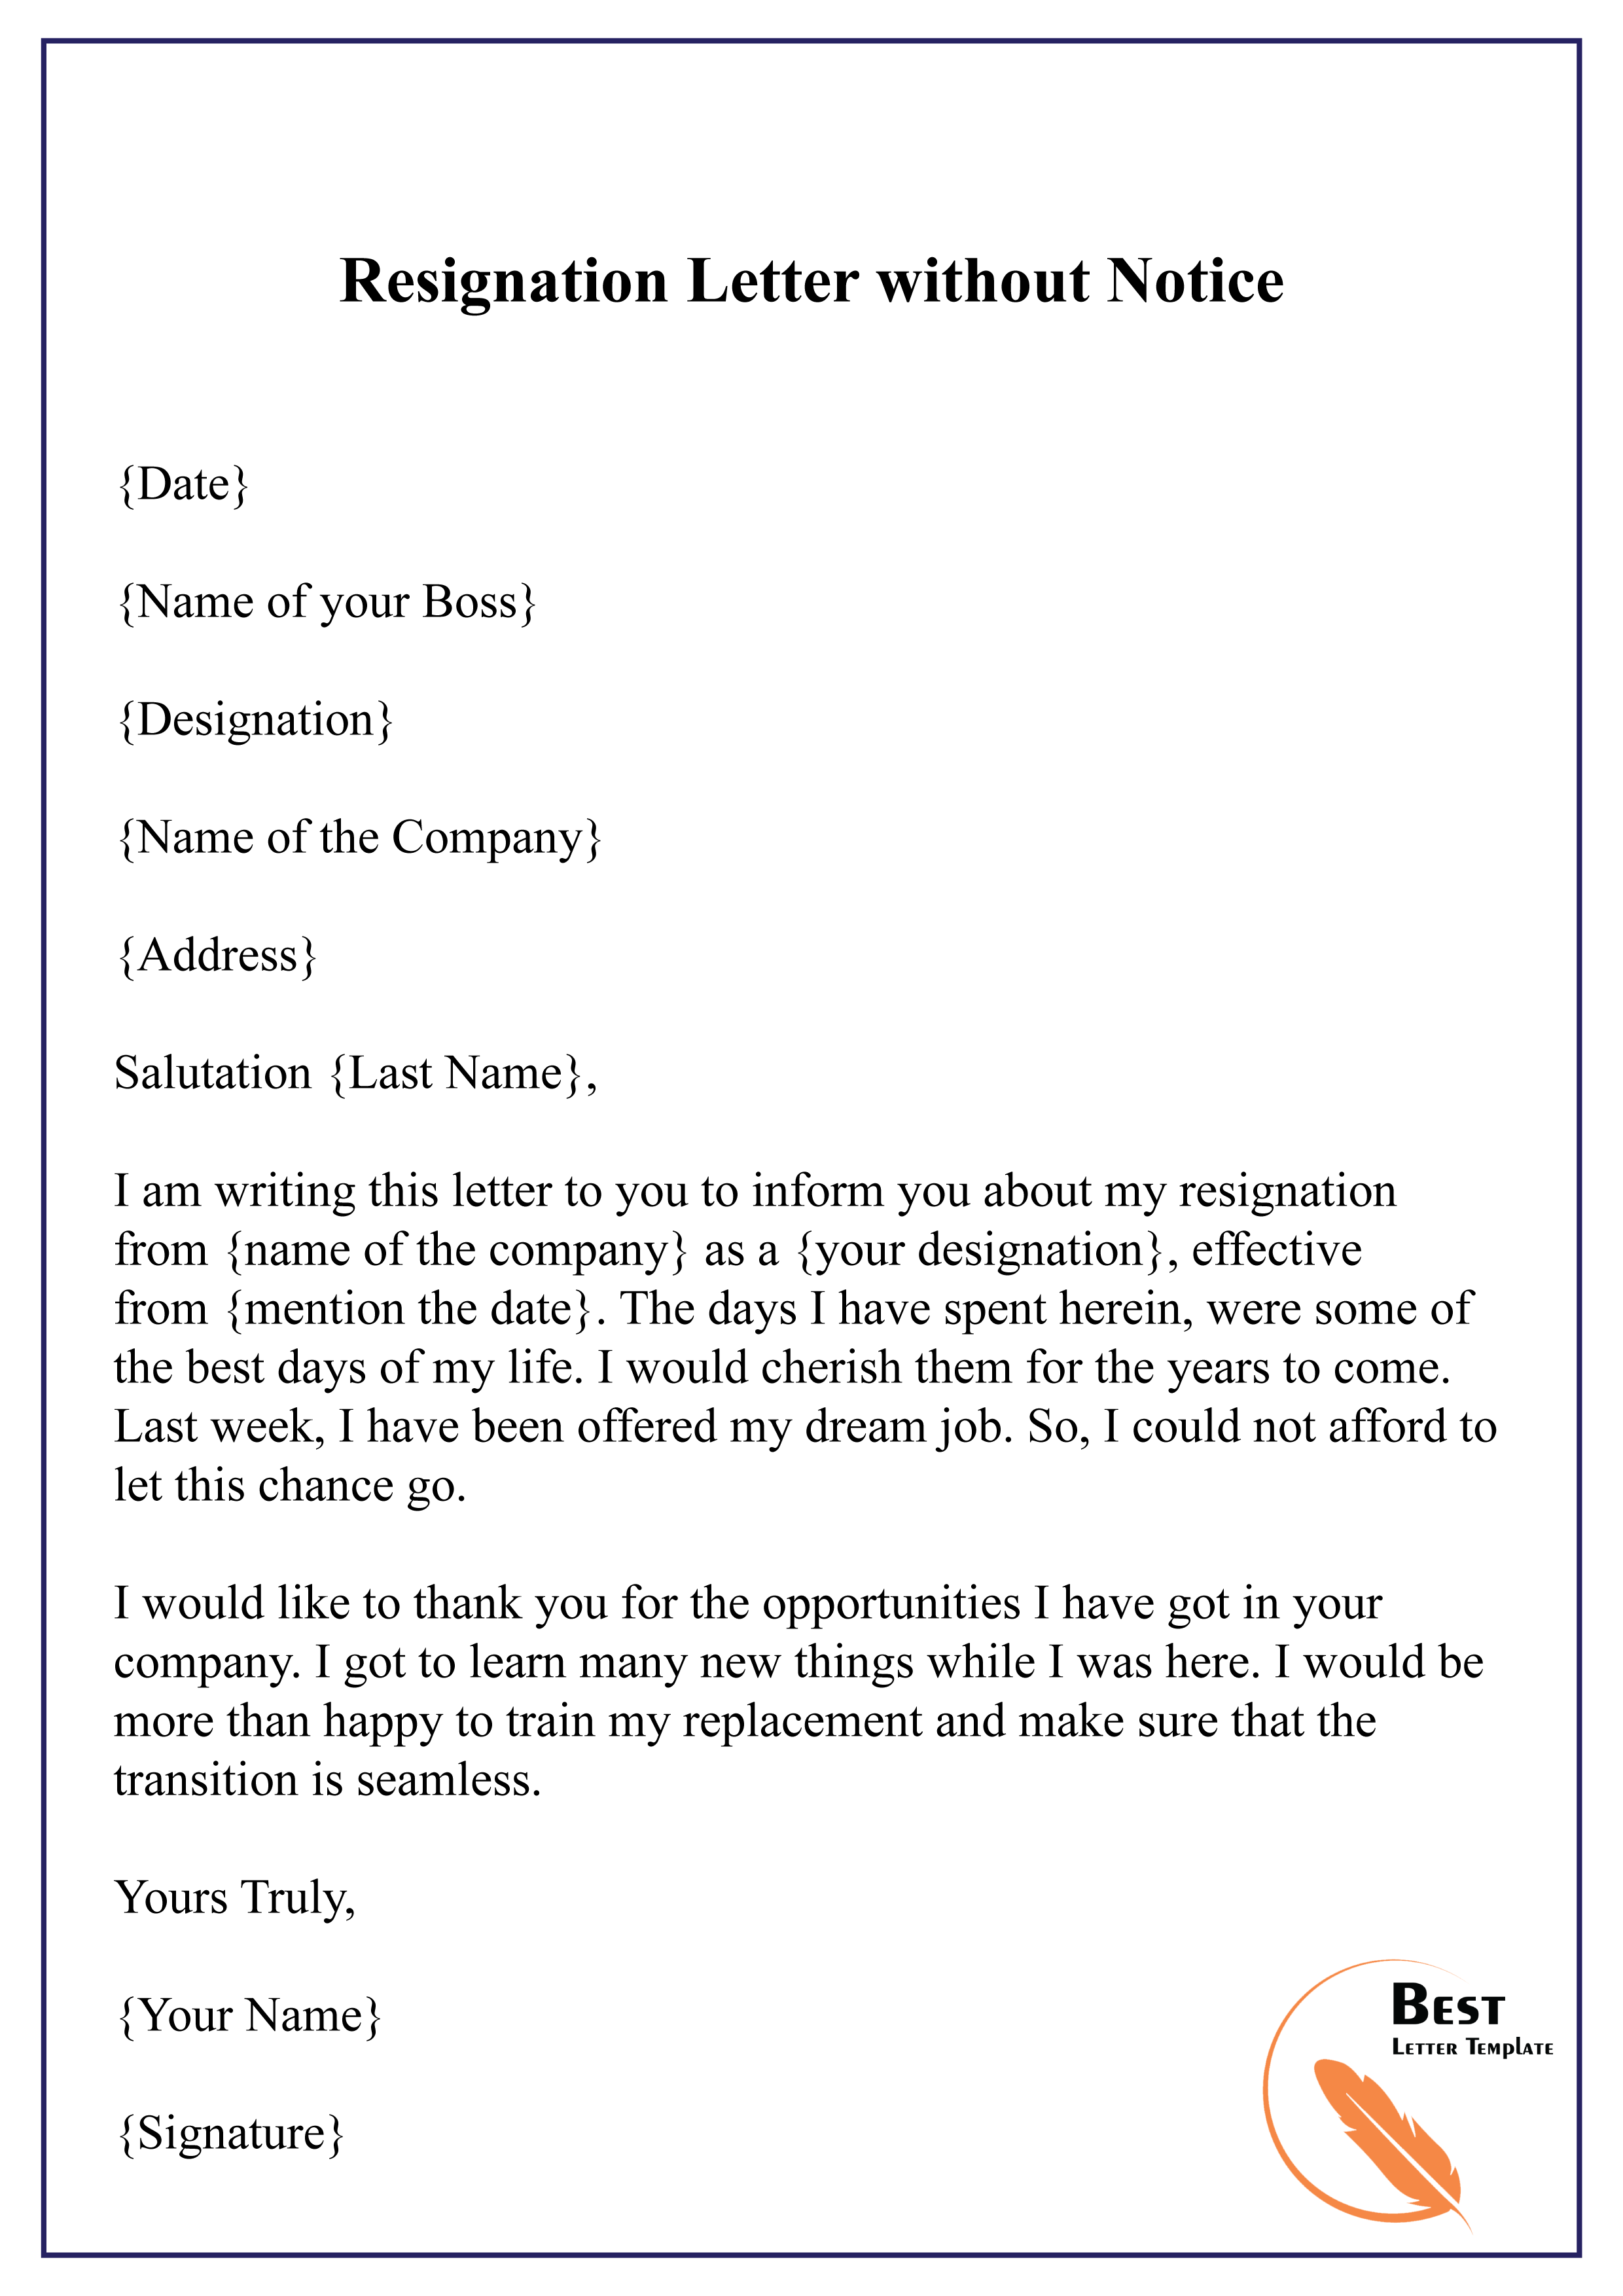 Letter Of Resignation Without Notice from bestlettertemplate.com